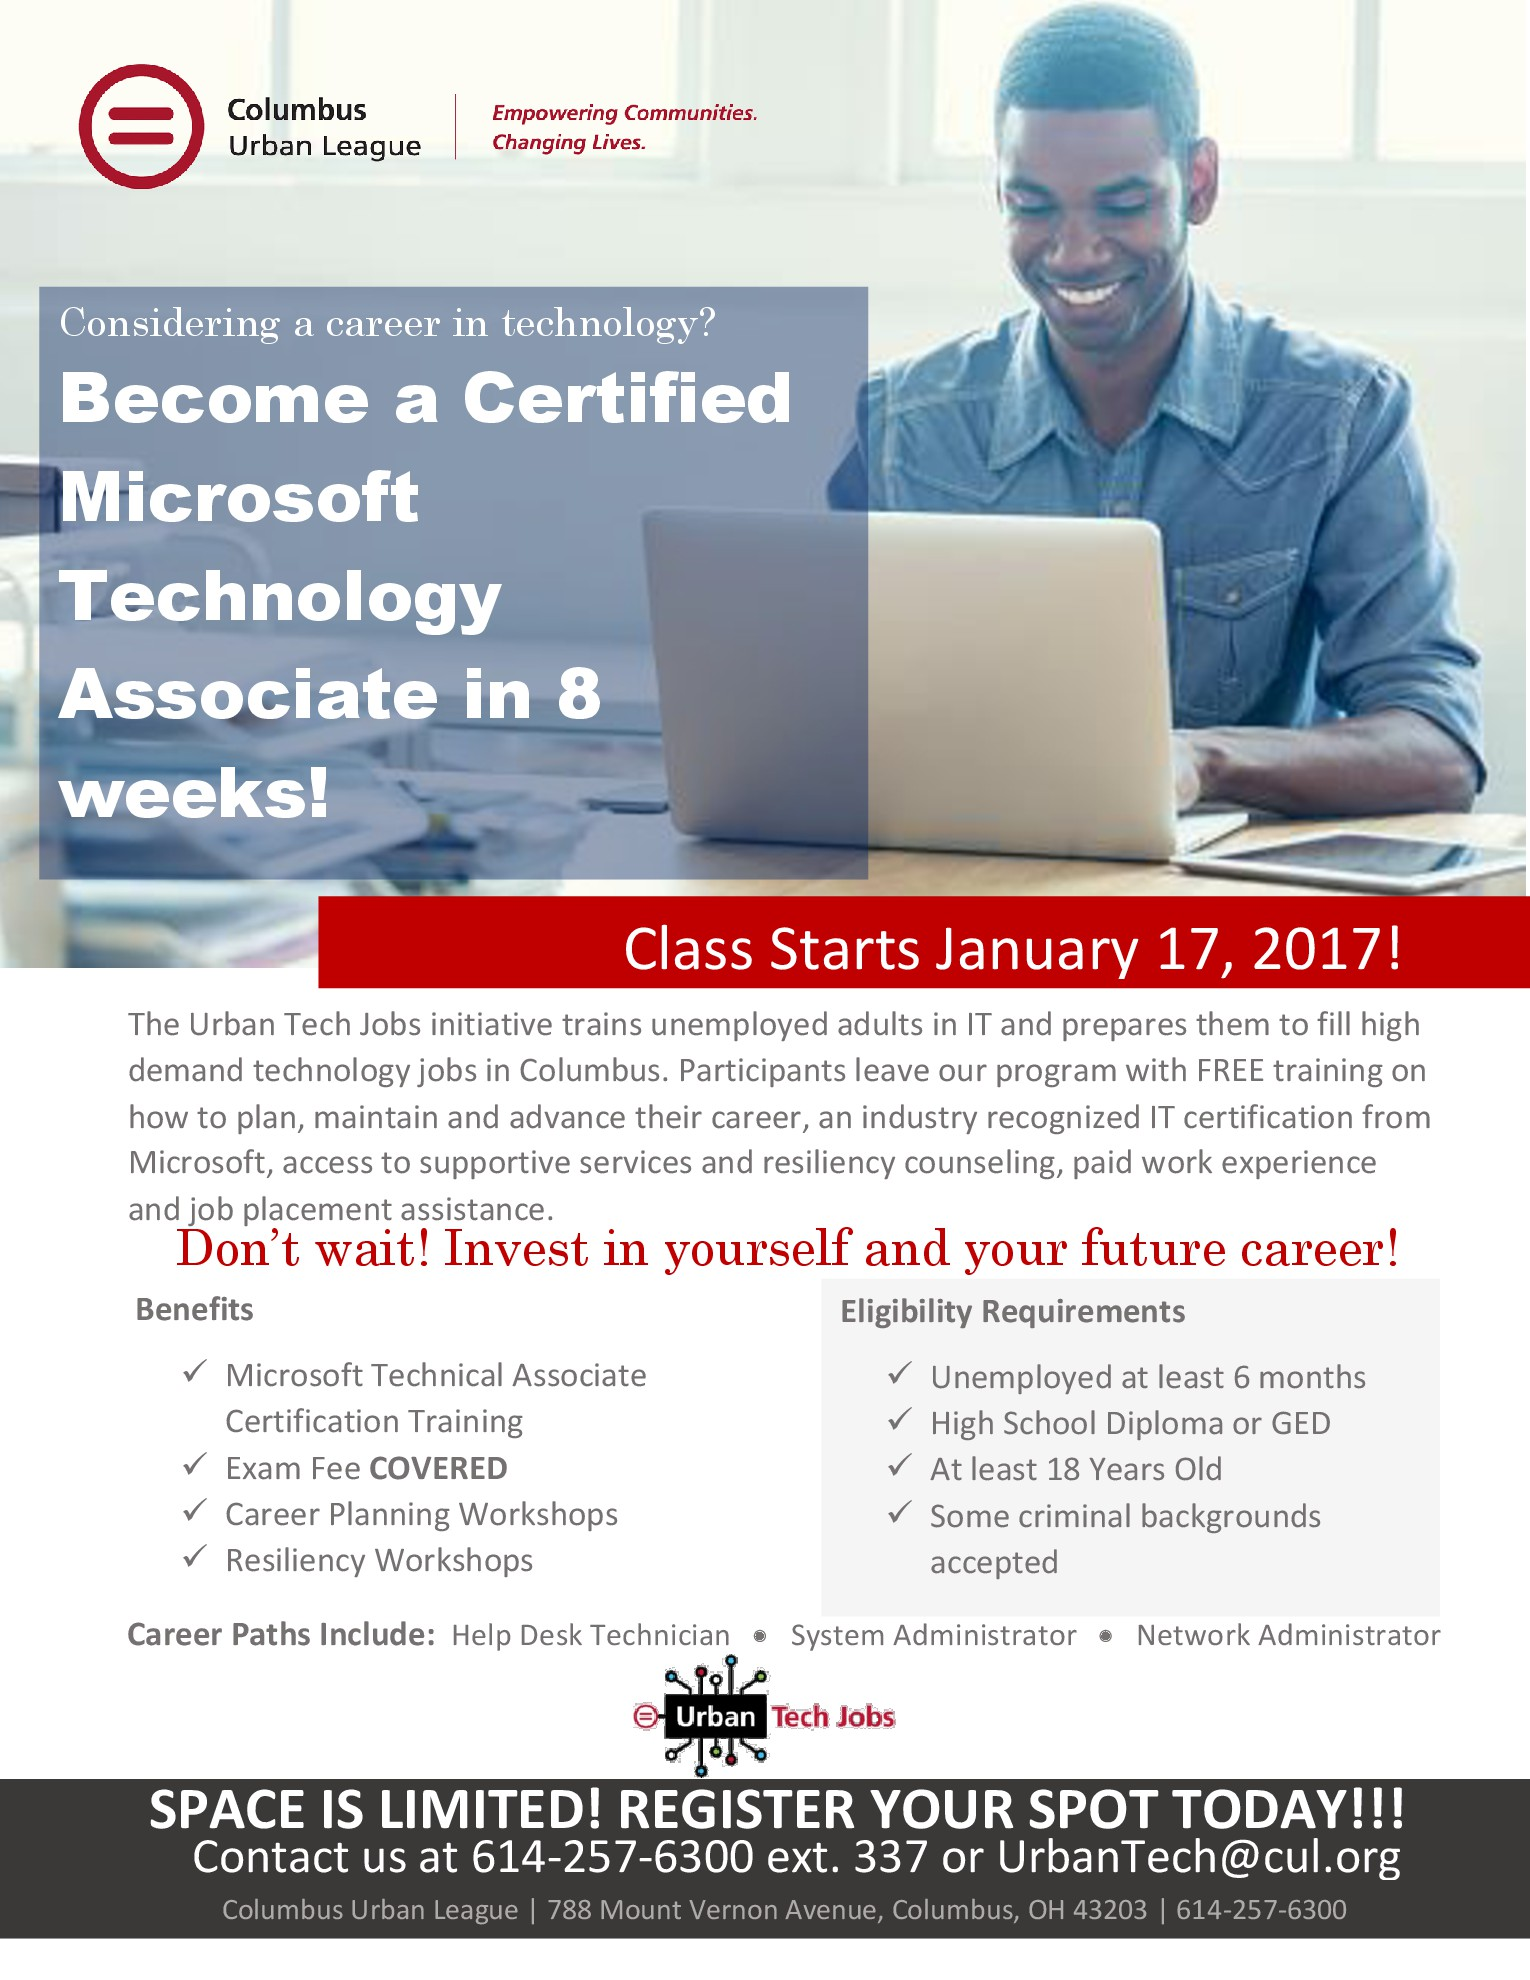 urban technology jobs program the columbus urban league columbus hard outcomes target train and place people in technology jobs often filled by h 1b candidates create more wealth and opportunity in central ohio and